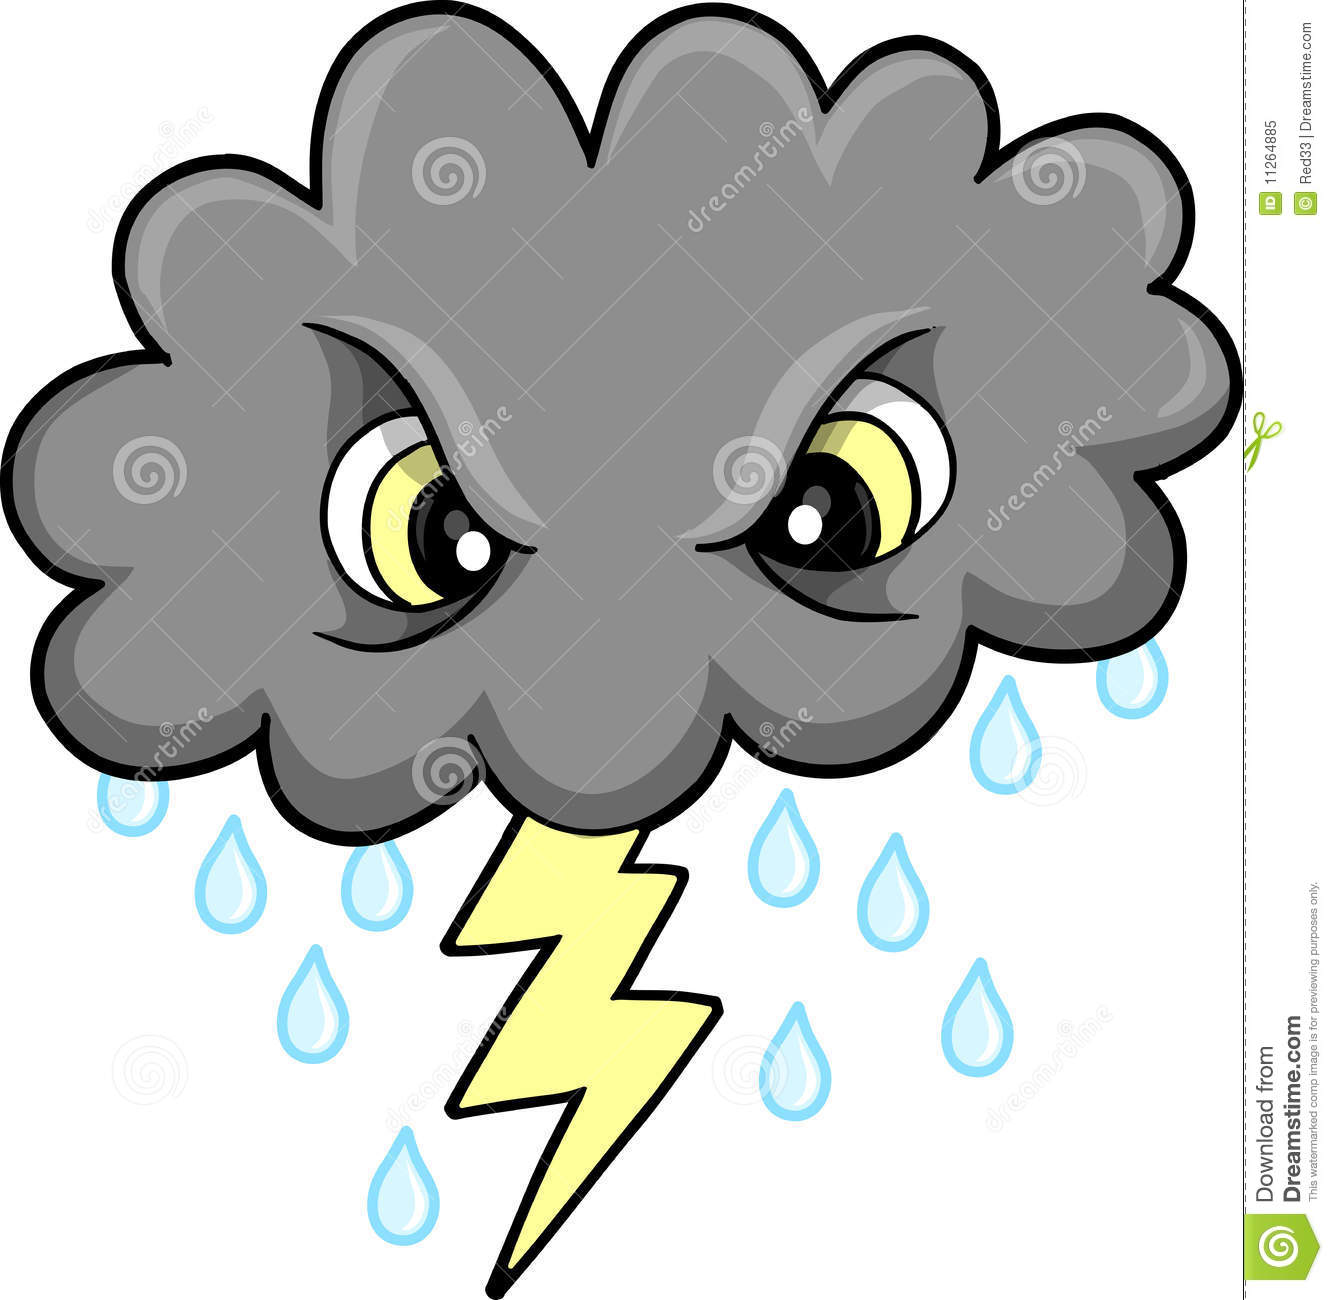 Mean Thunder Cloud Vector Royalty Free Stock Photo   Image  11264885